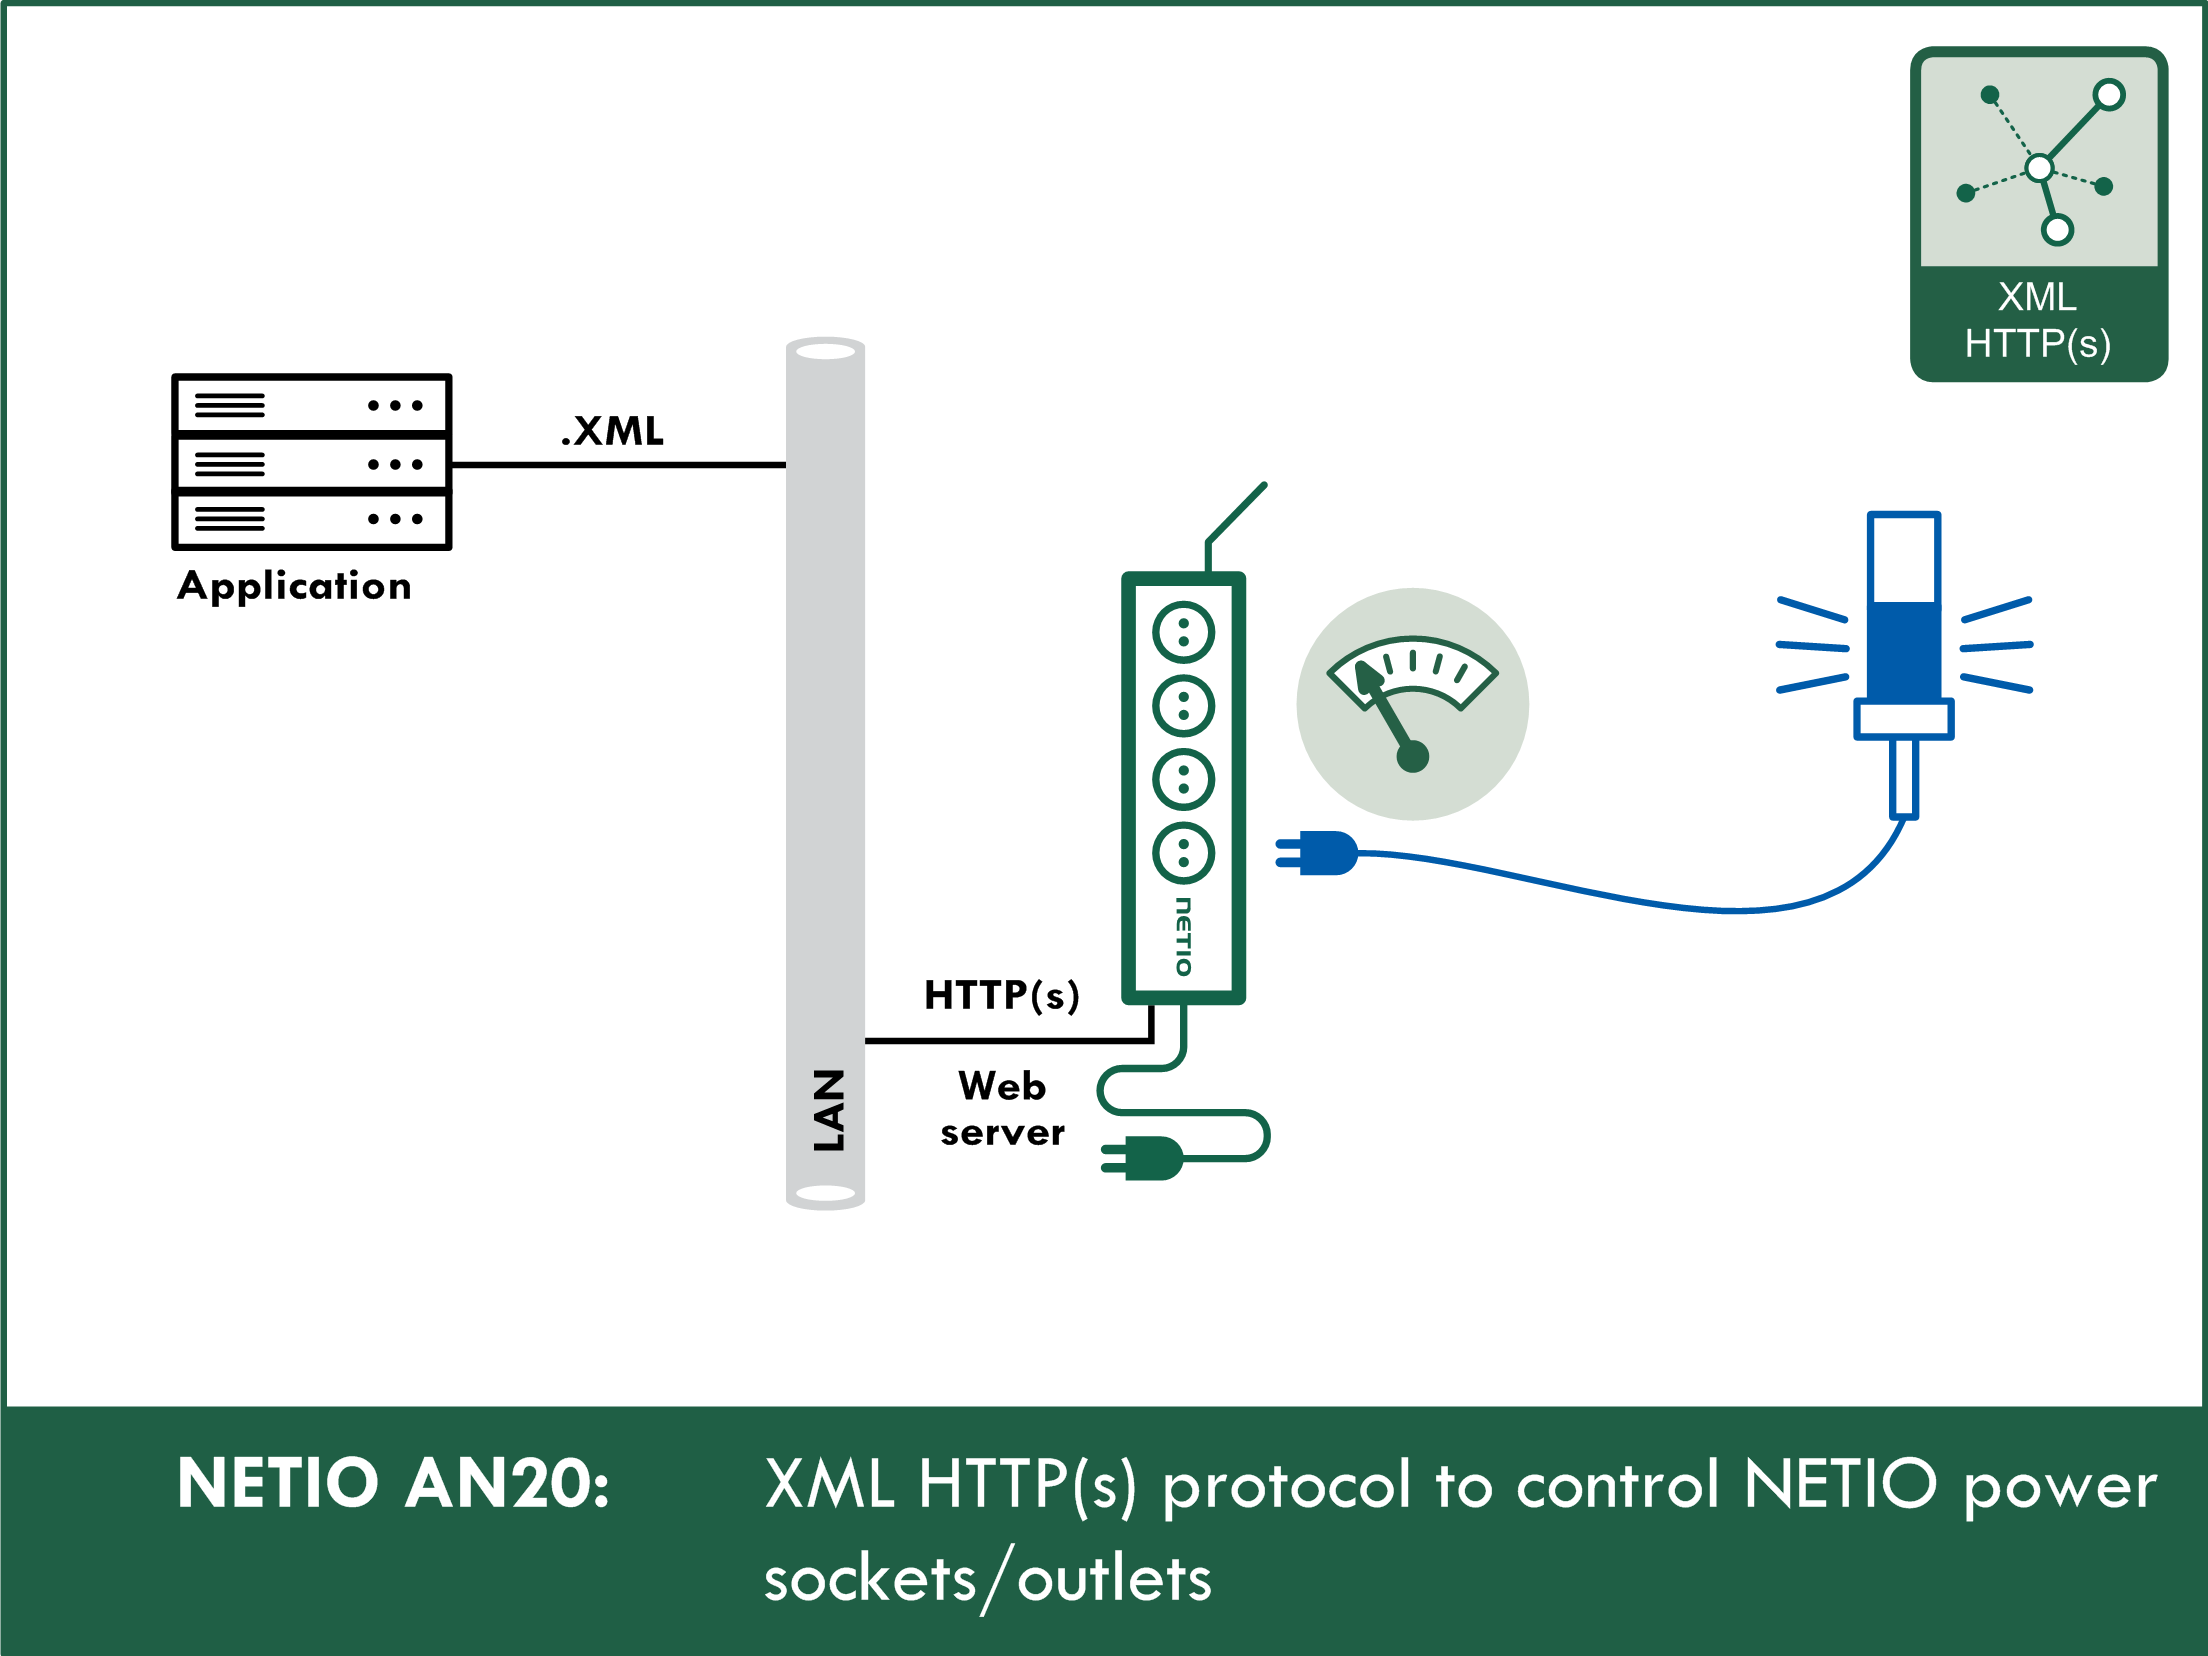 AN20: XML HTTP(s) protocol to control NETIO smart power sockets 110/230V